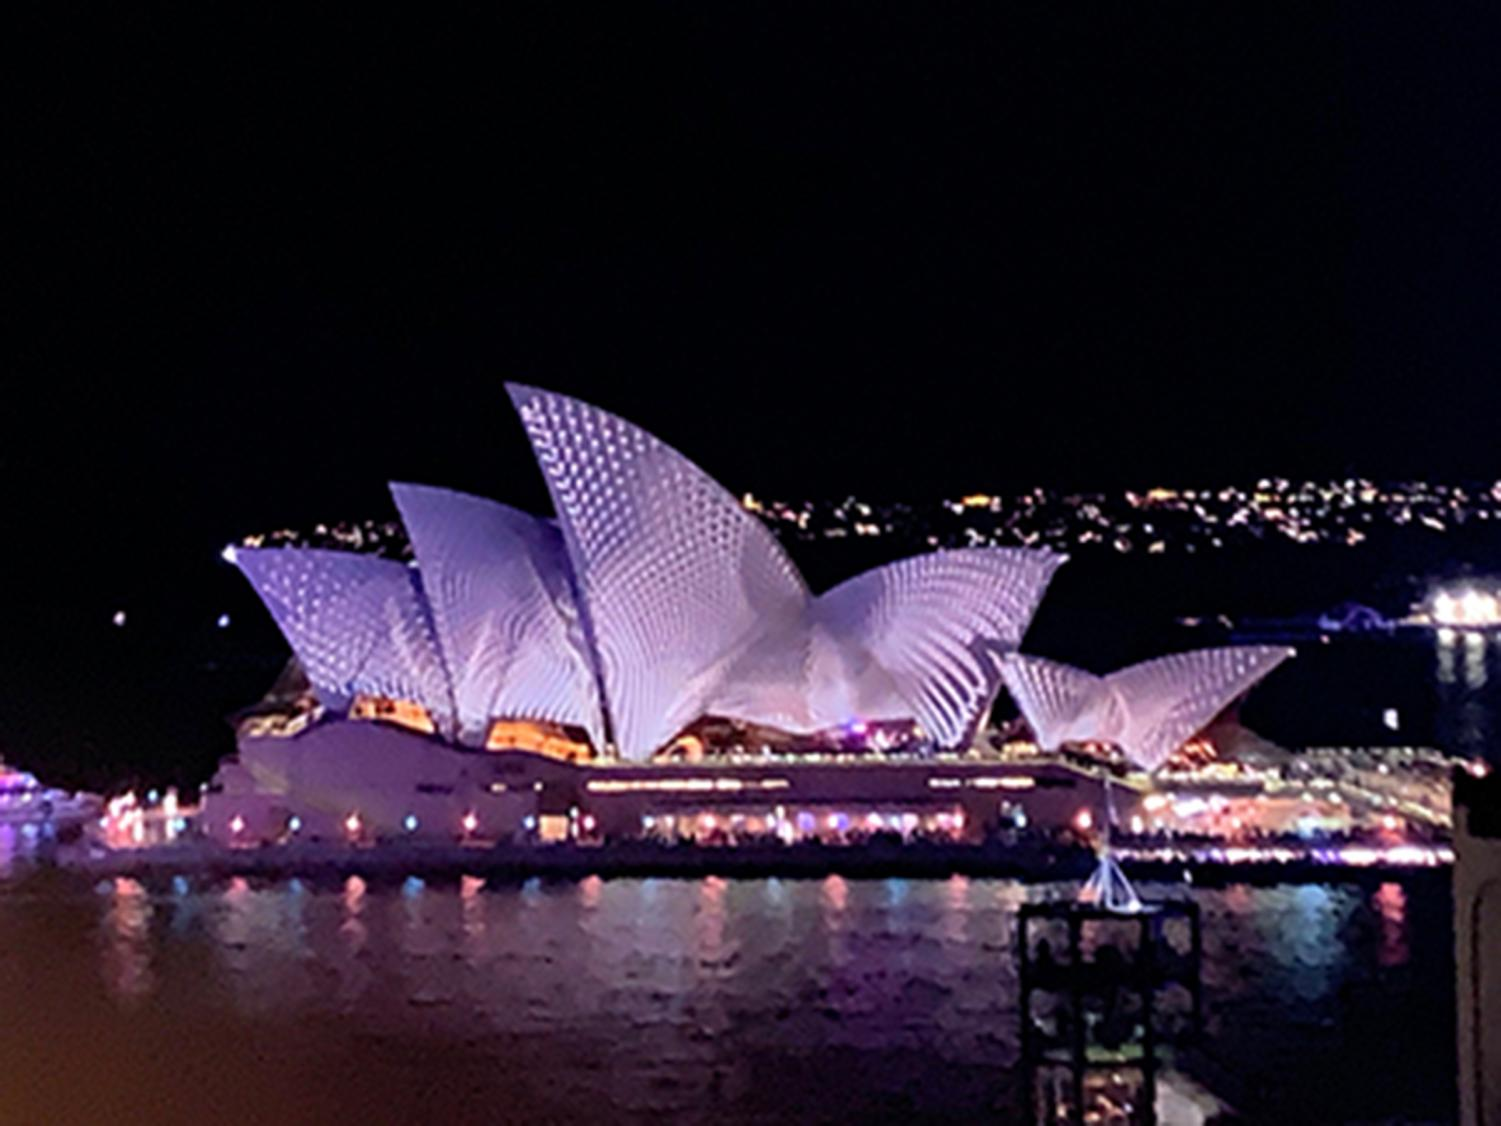 The Sydney Opera House is just one of the attractions students were able to visit on their summer trip Down Under.